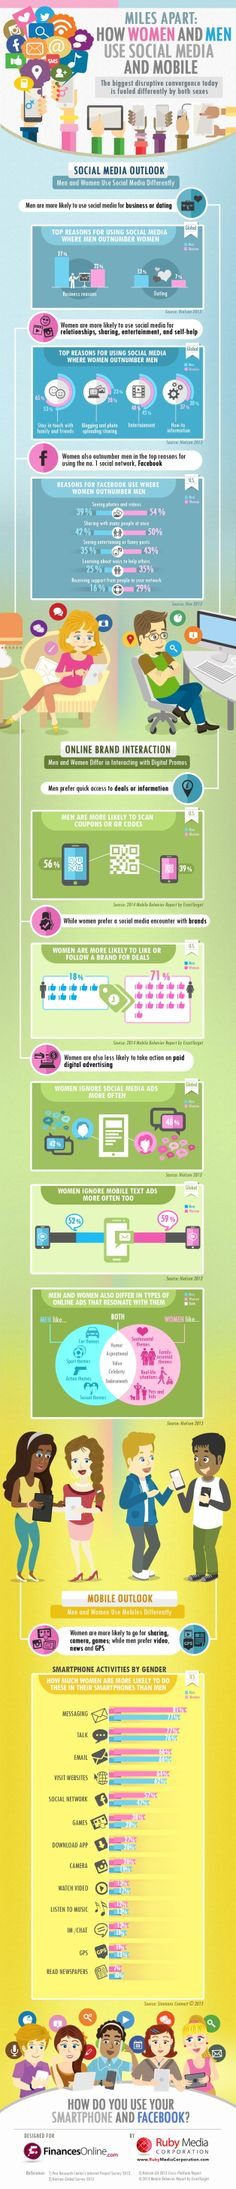 INFOGRAPHIC: The difference between men and women on mobile   Mobile Industry   Mobile Entertainment